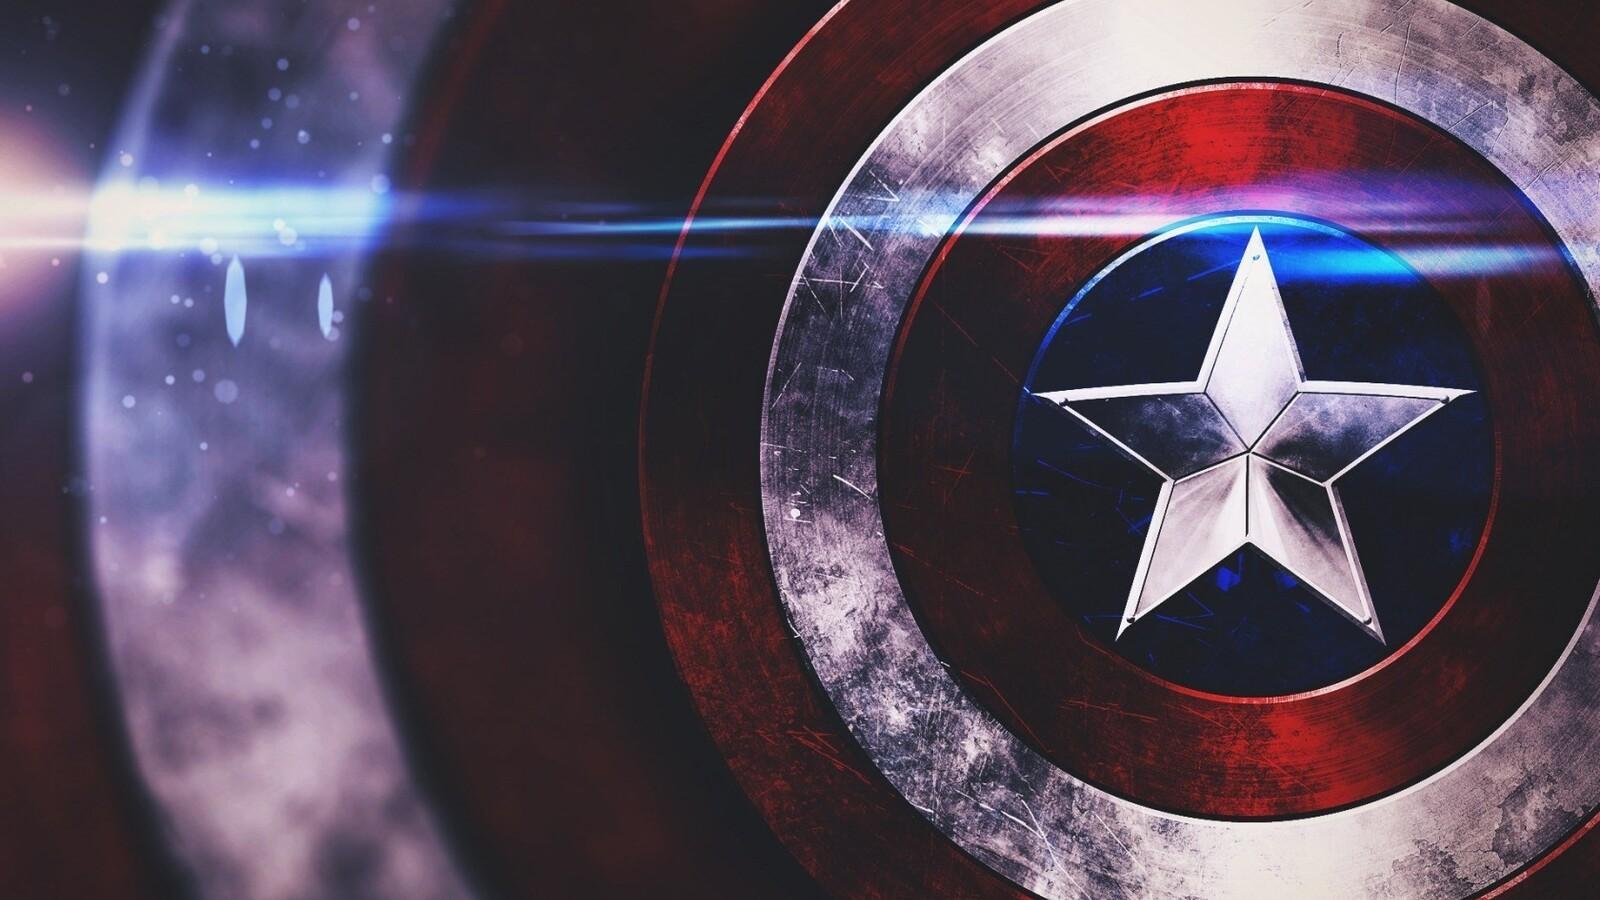 1600x900 Captain America Shield 1600x900 Resolution Hd 4k Wallpapers